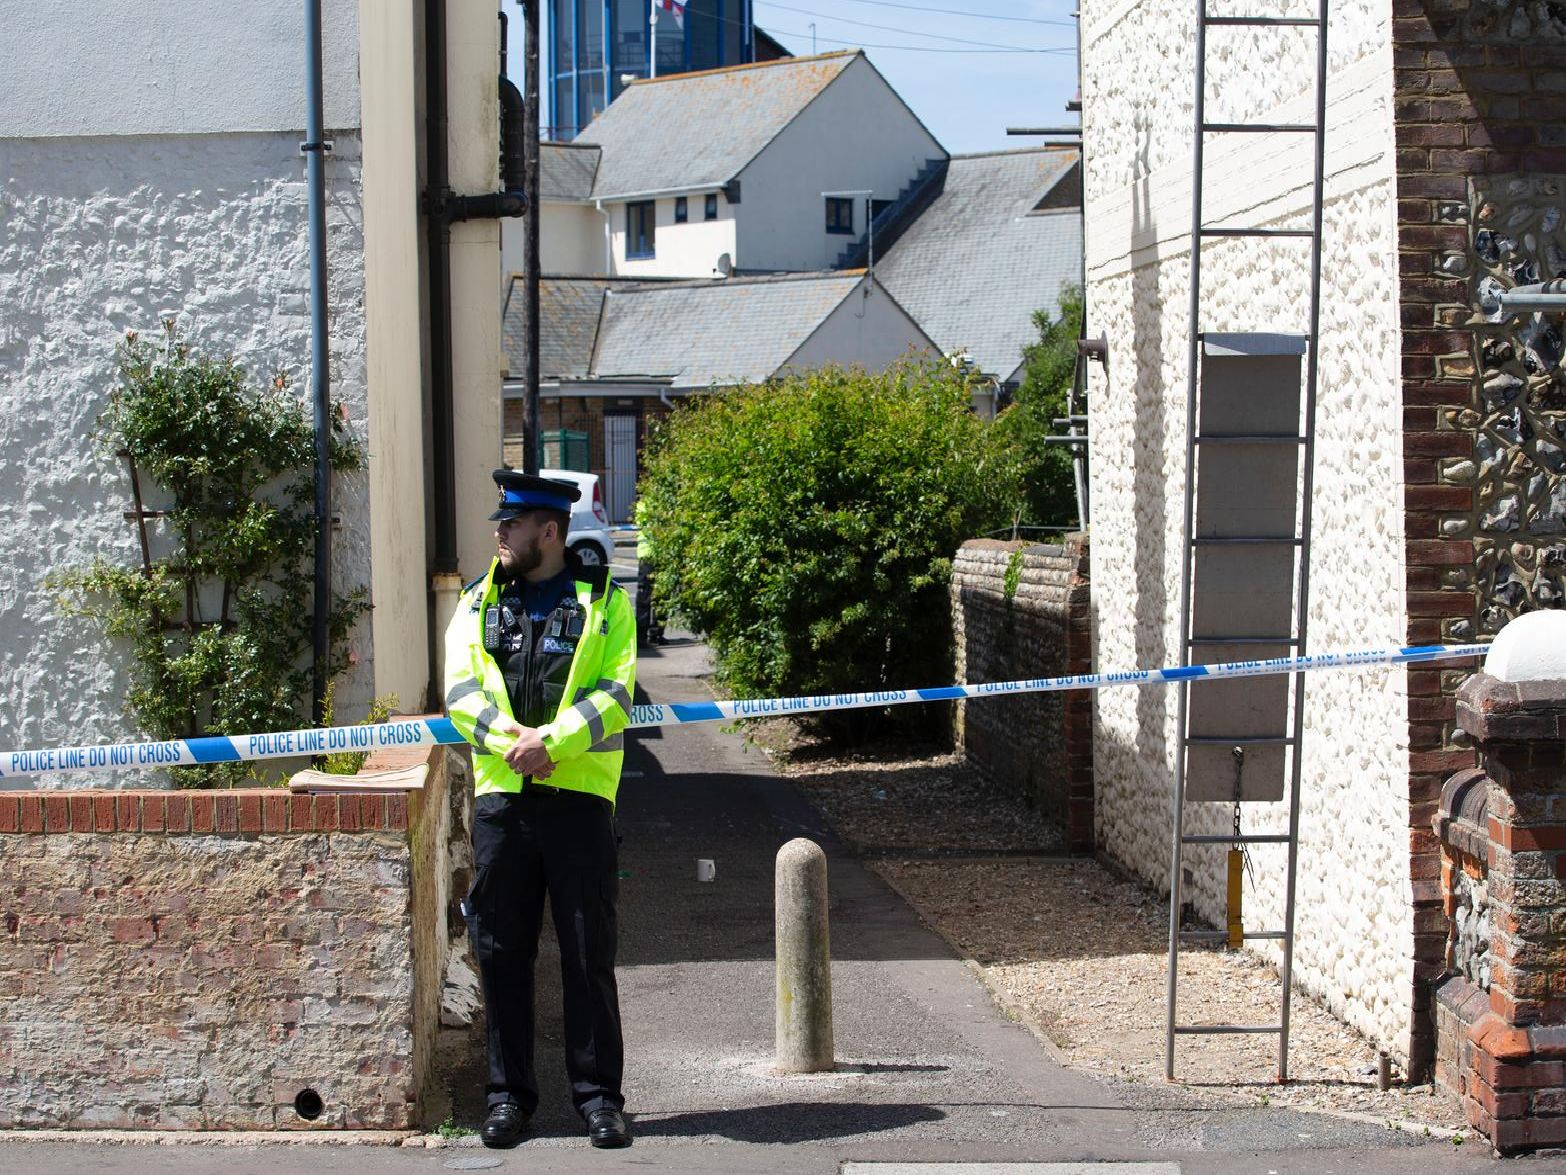 Police have cordoned off an alleyway next to Pier Road, Littlehampton